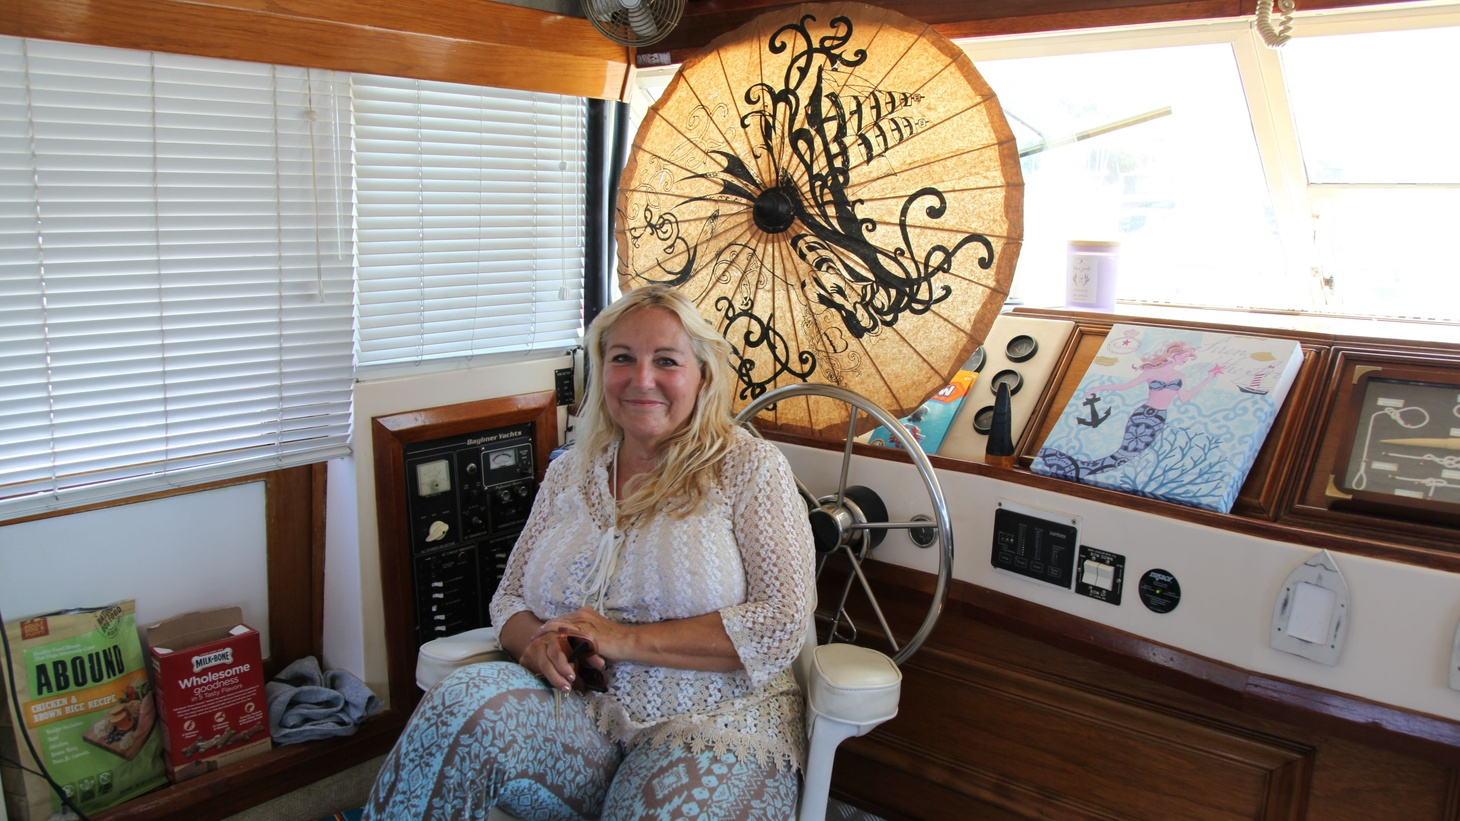 """Sick of high rents but want to be close to the ocean? Very close? DnA explores the charms and challenges of living aboard a boat, and learns about the changes coming as Marina del Rey becomes more """"corporate."""""""